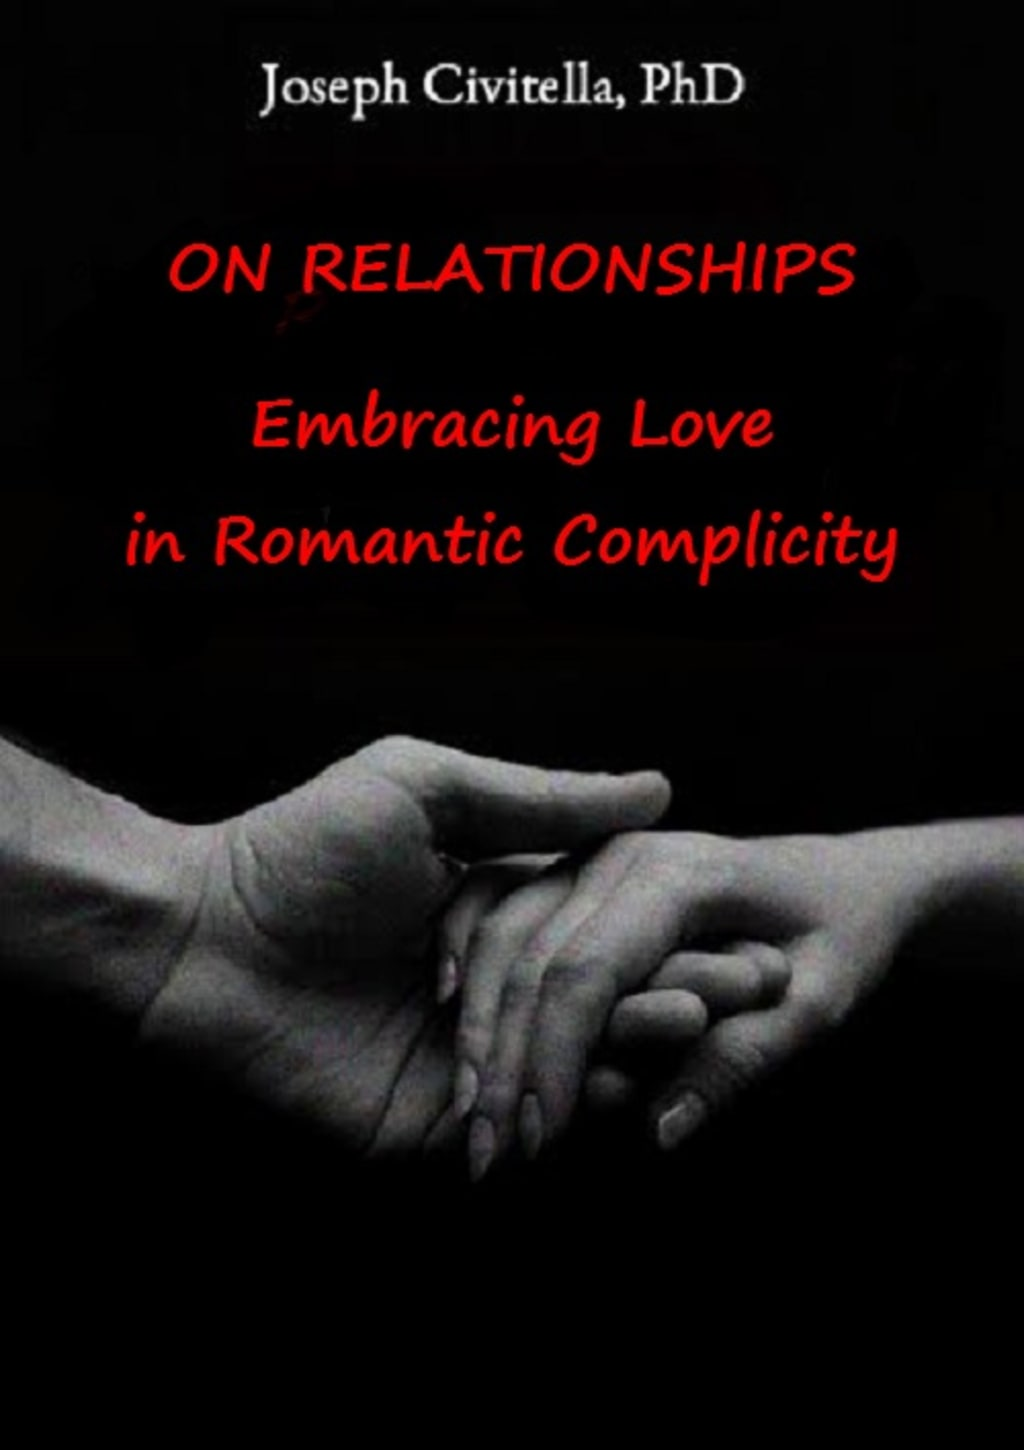 On Relationships: Embracing Love in Romantic Complicity—Excerpt 4